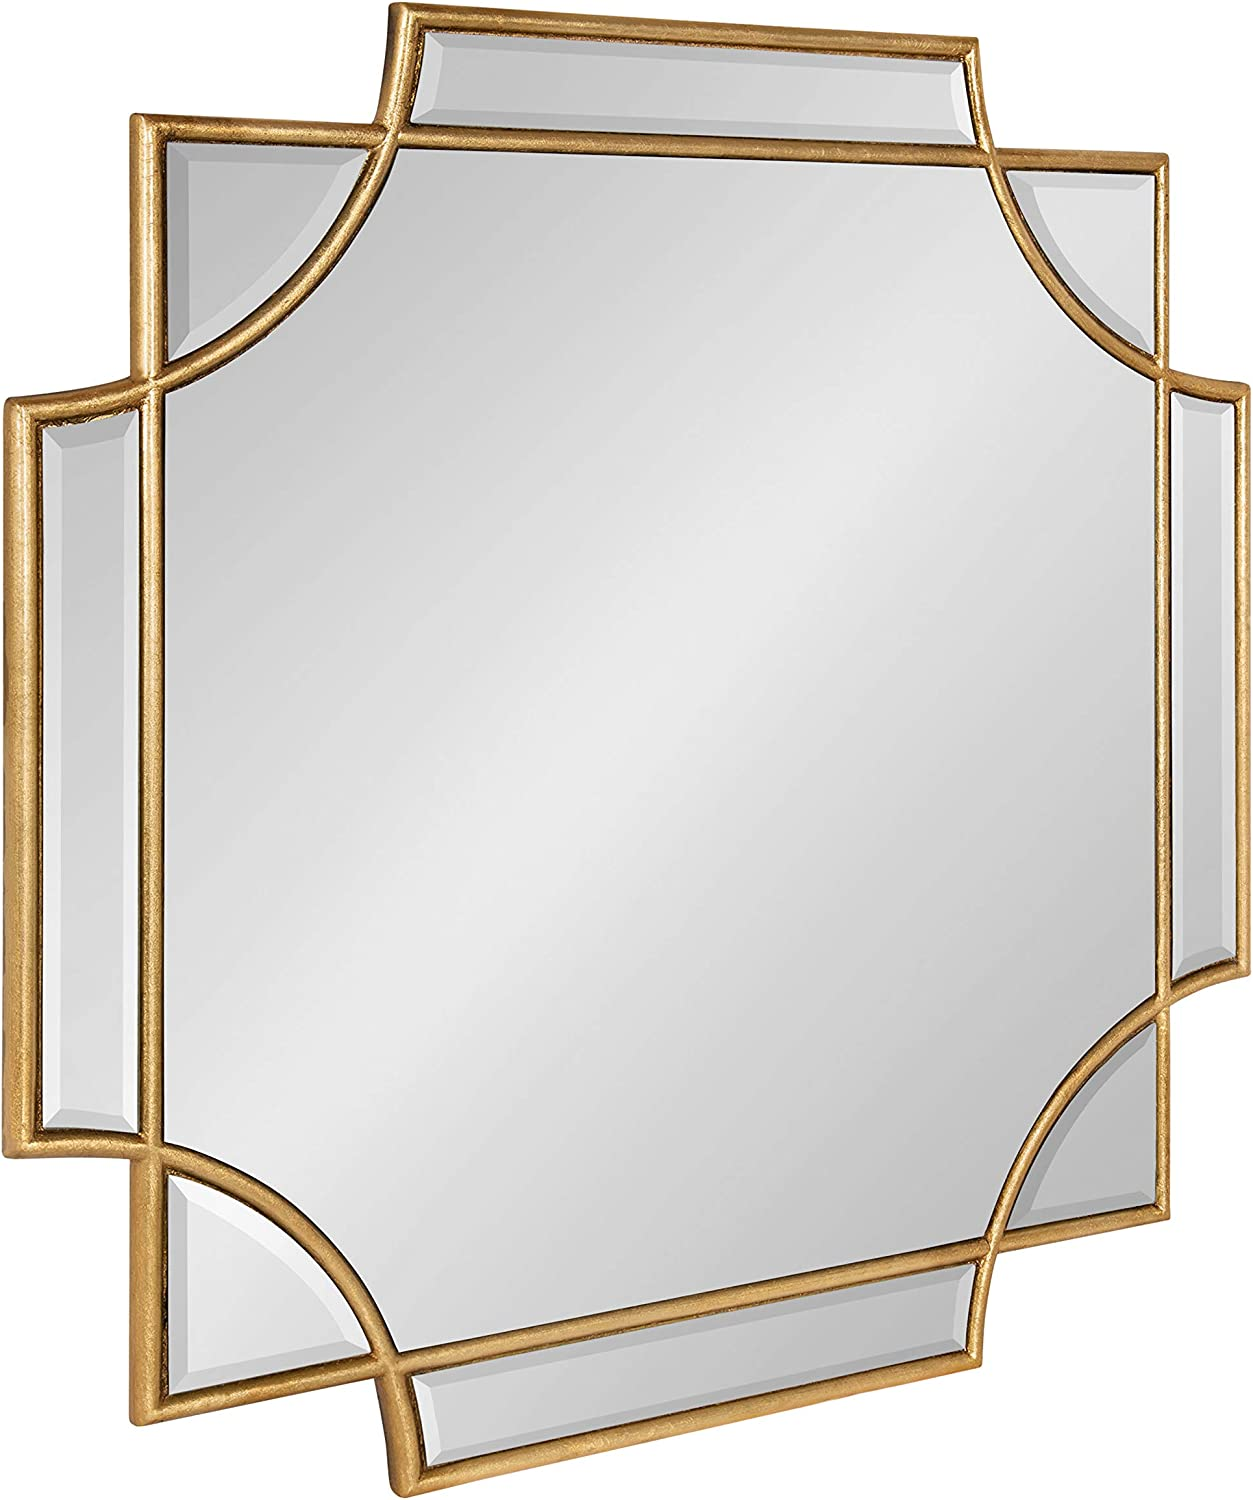 Kate and Laurel Minuette Glam Square Wall Mirror, 24